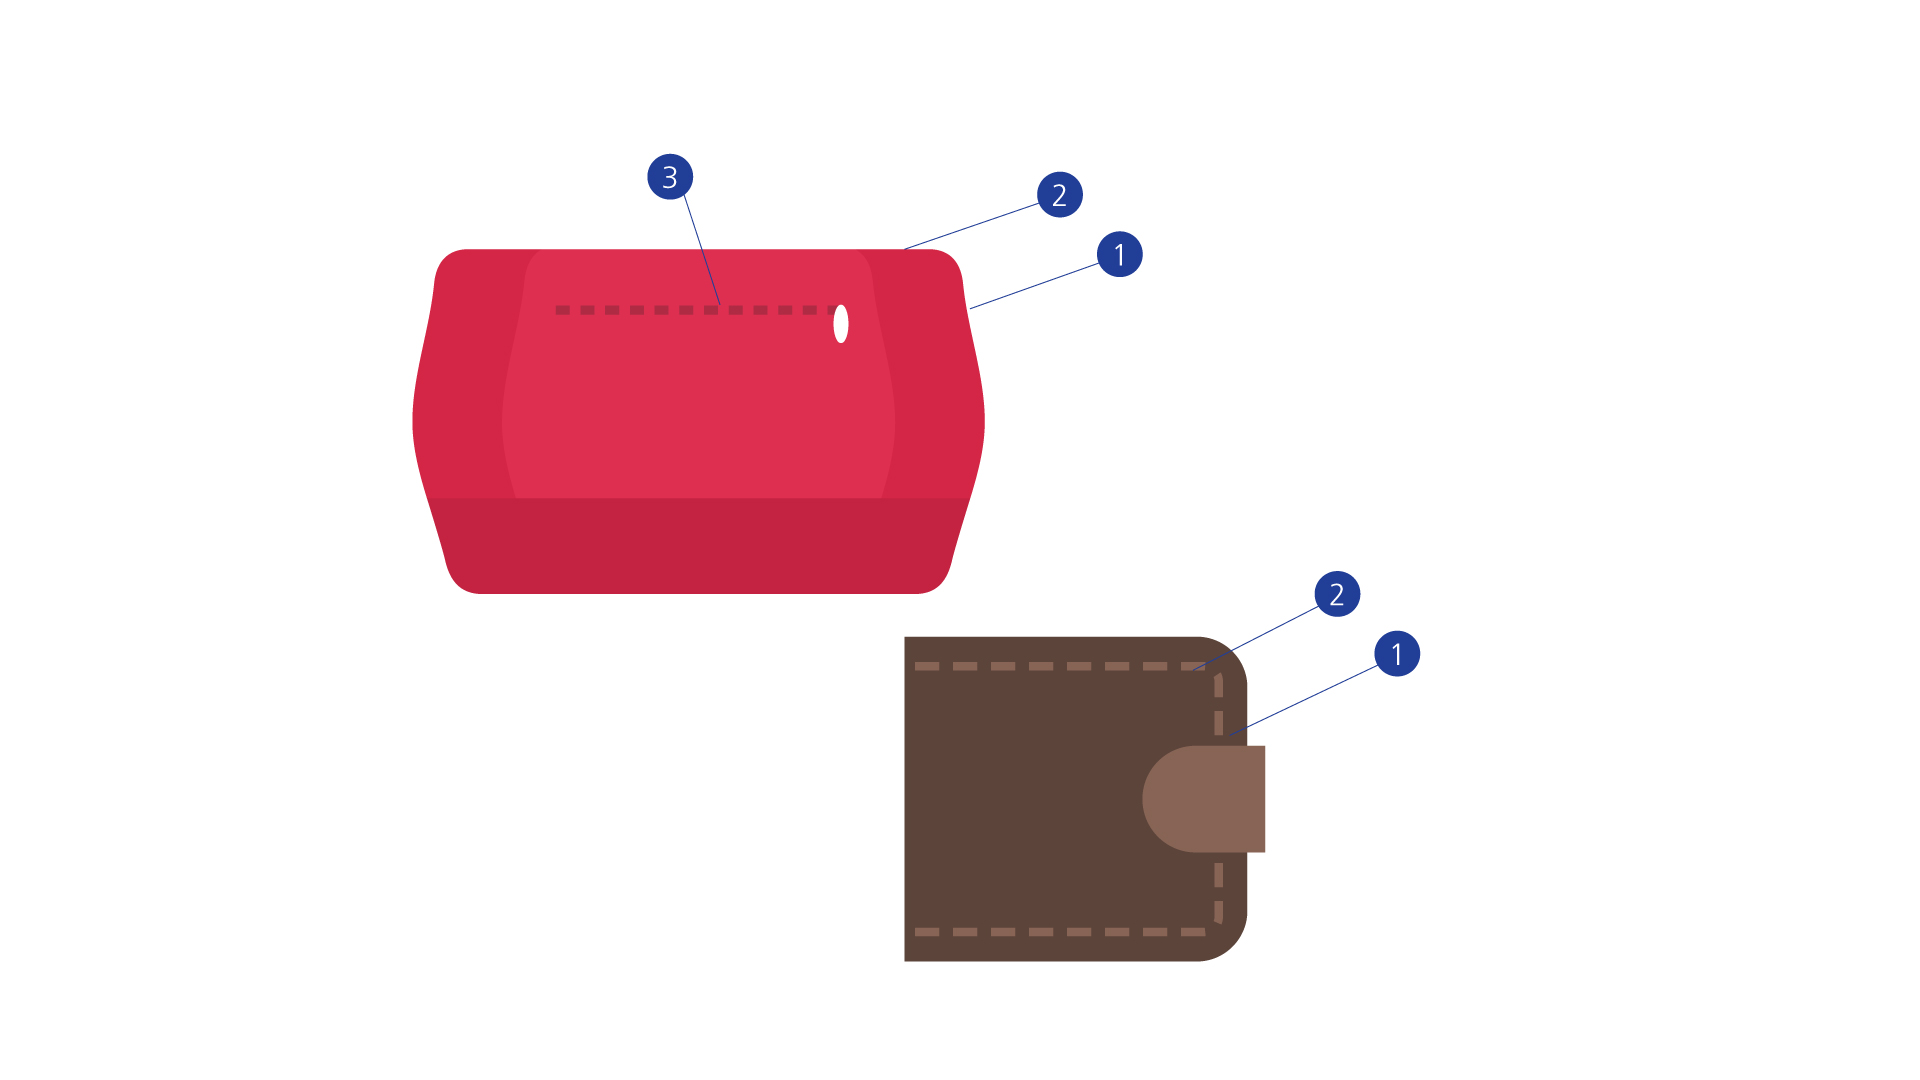 Purses and Wallets diagram